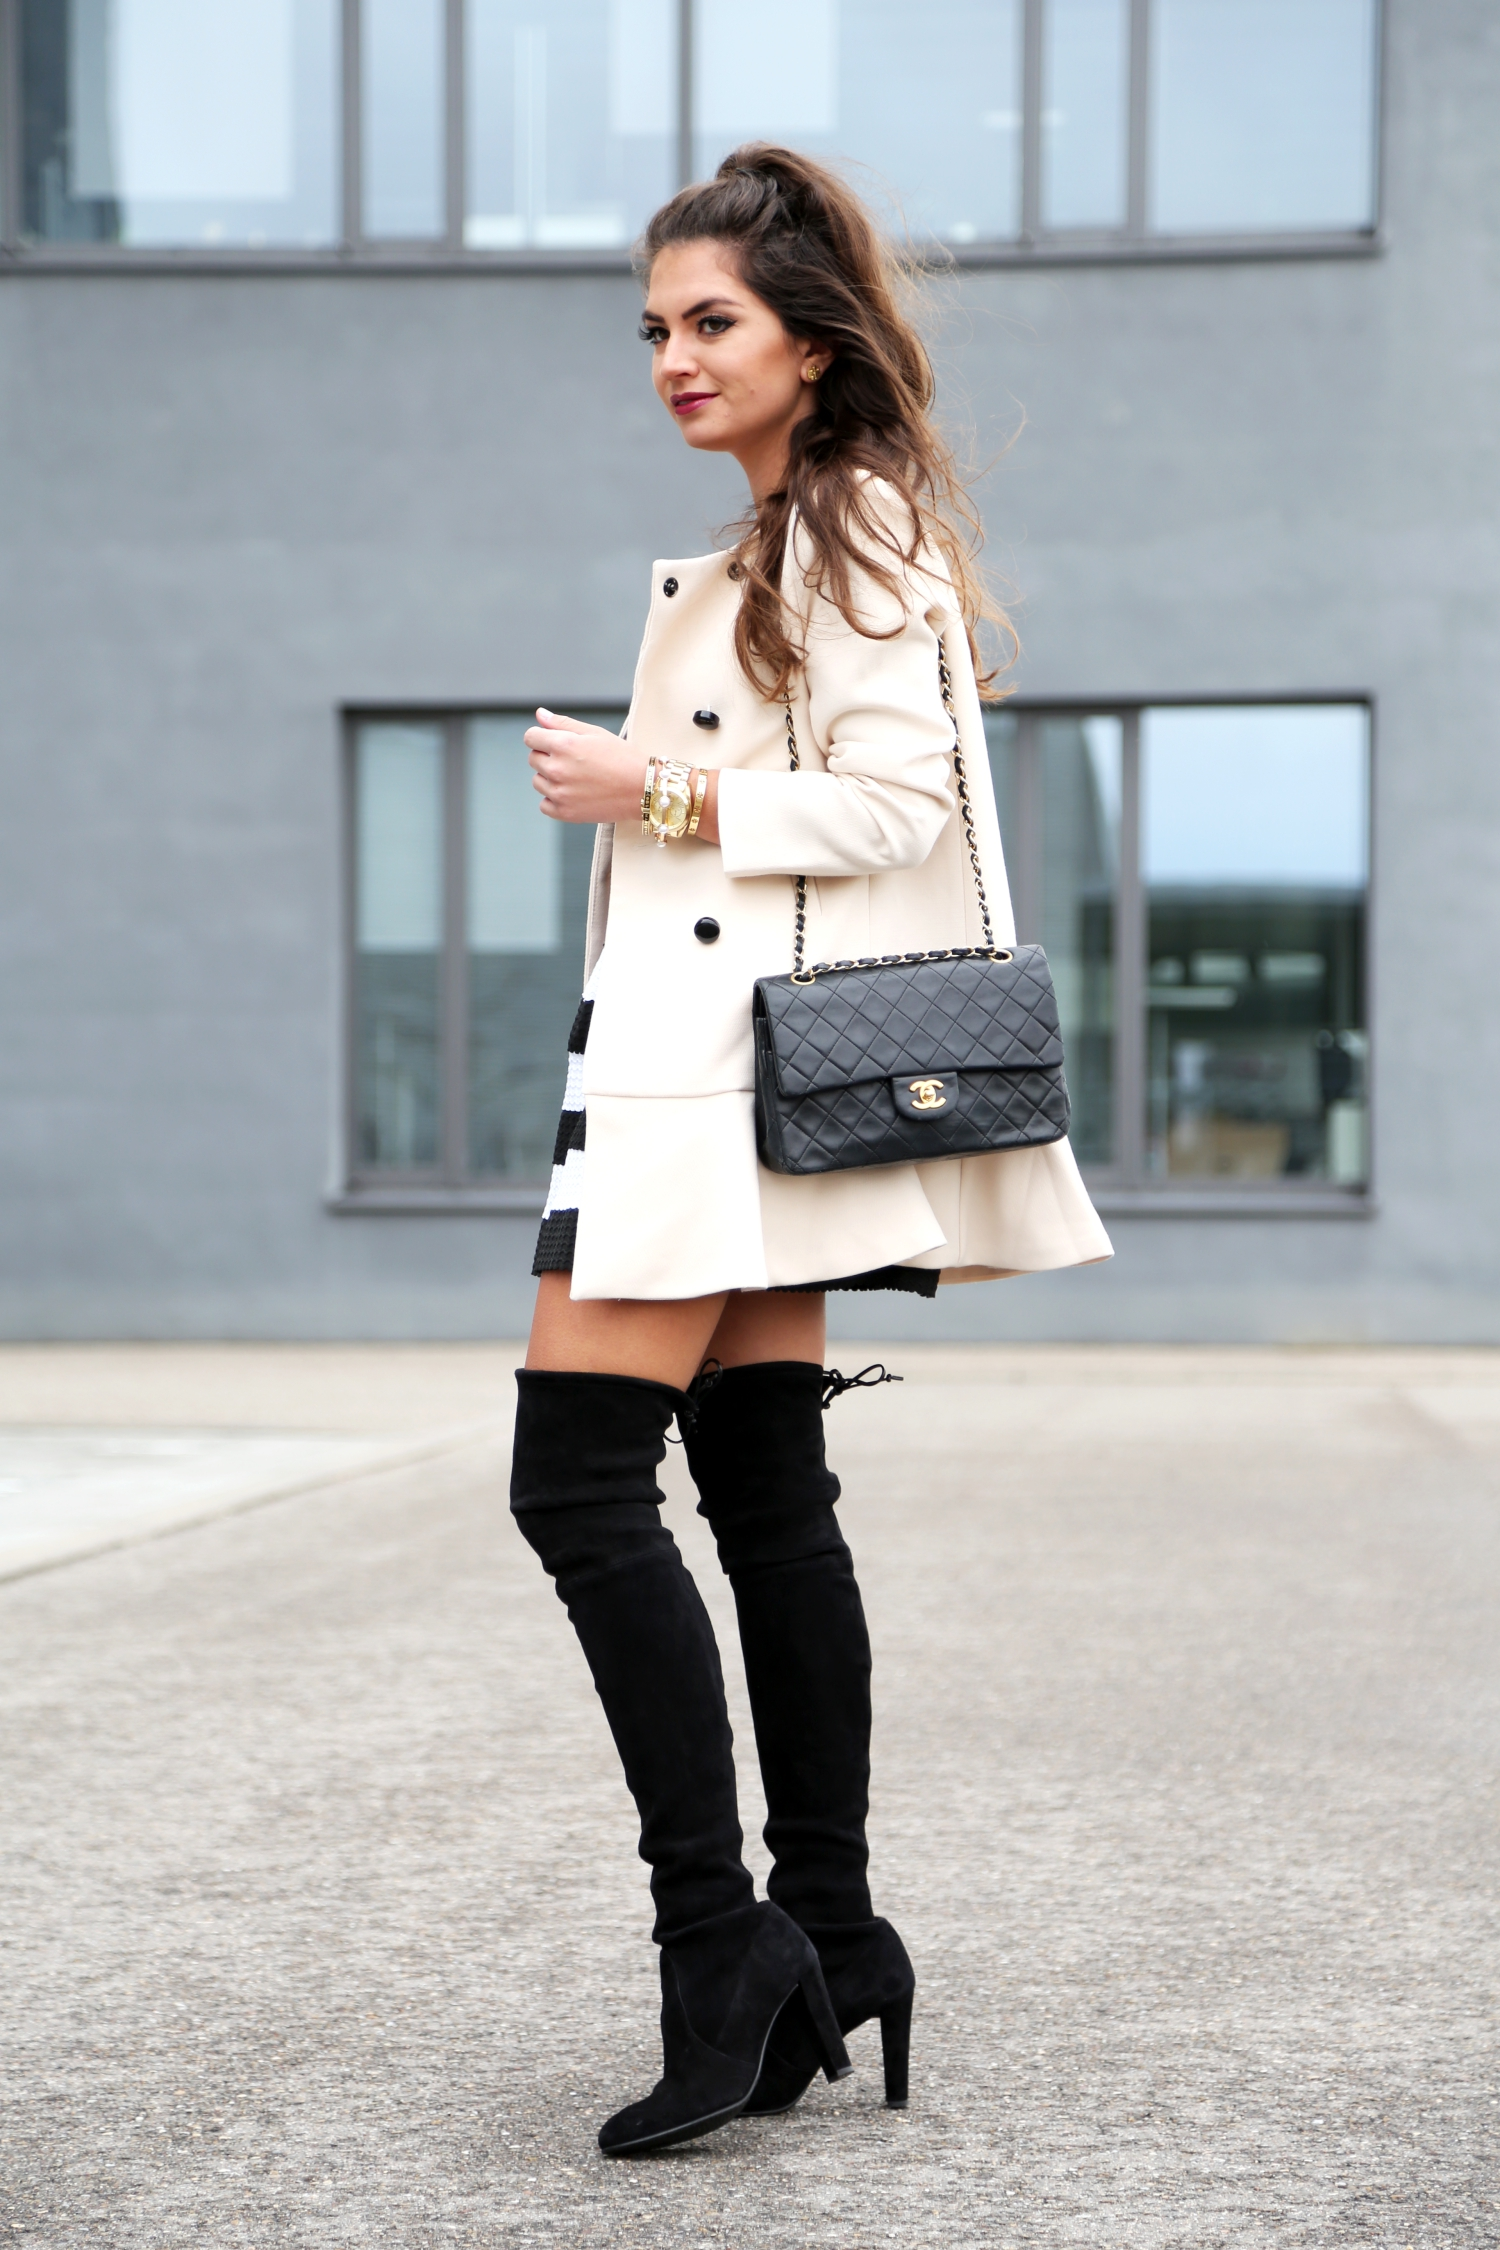 outfit-fashionhippieloves-overknee-spring-look-chanel-bag